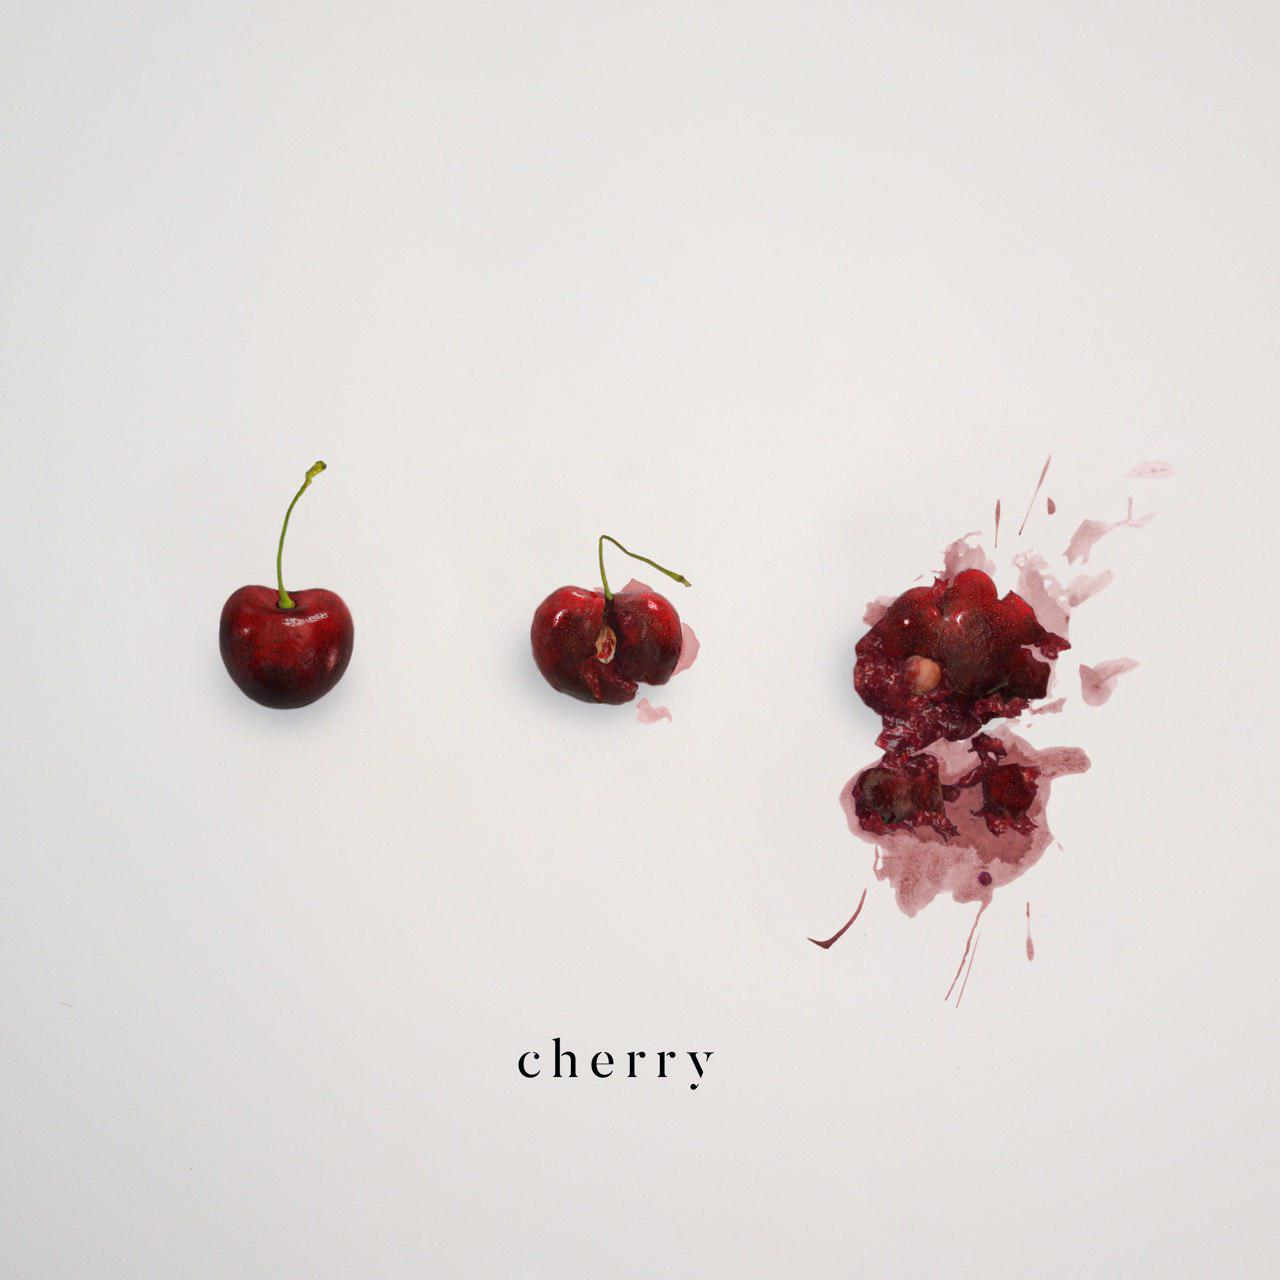 Cherry single art